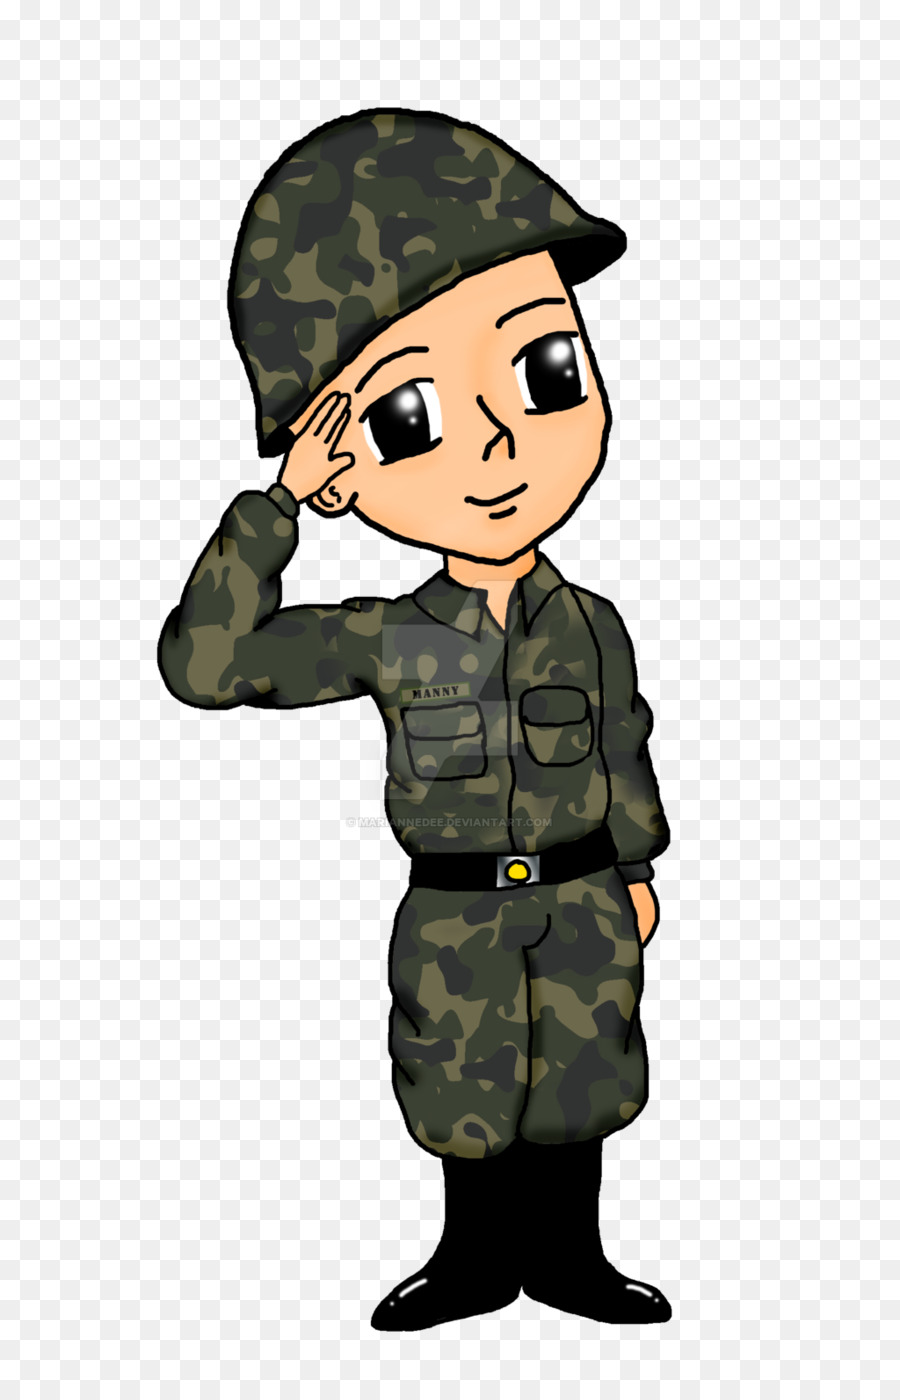 Soldier Cartoon clipart - Soldier, Drawing, Cartoon